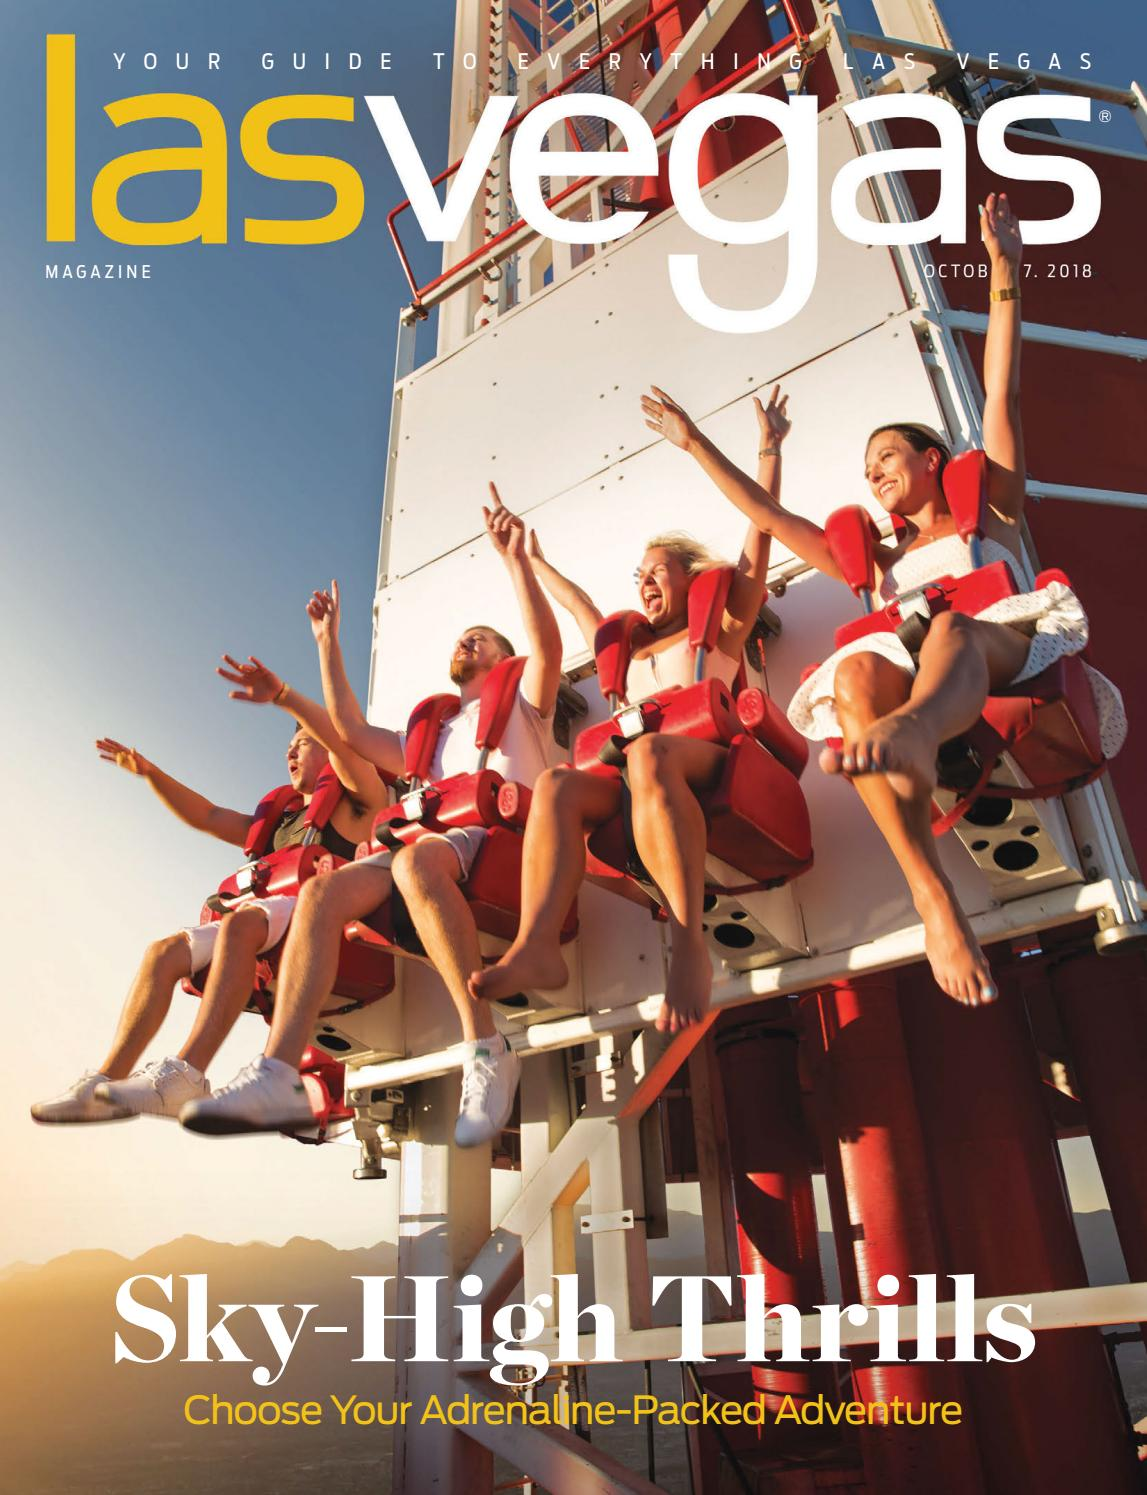 2018-10-07 - Las Vegas Magazine by Greenspun Media Group - issuu